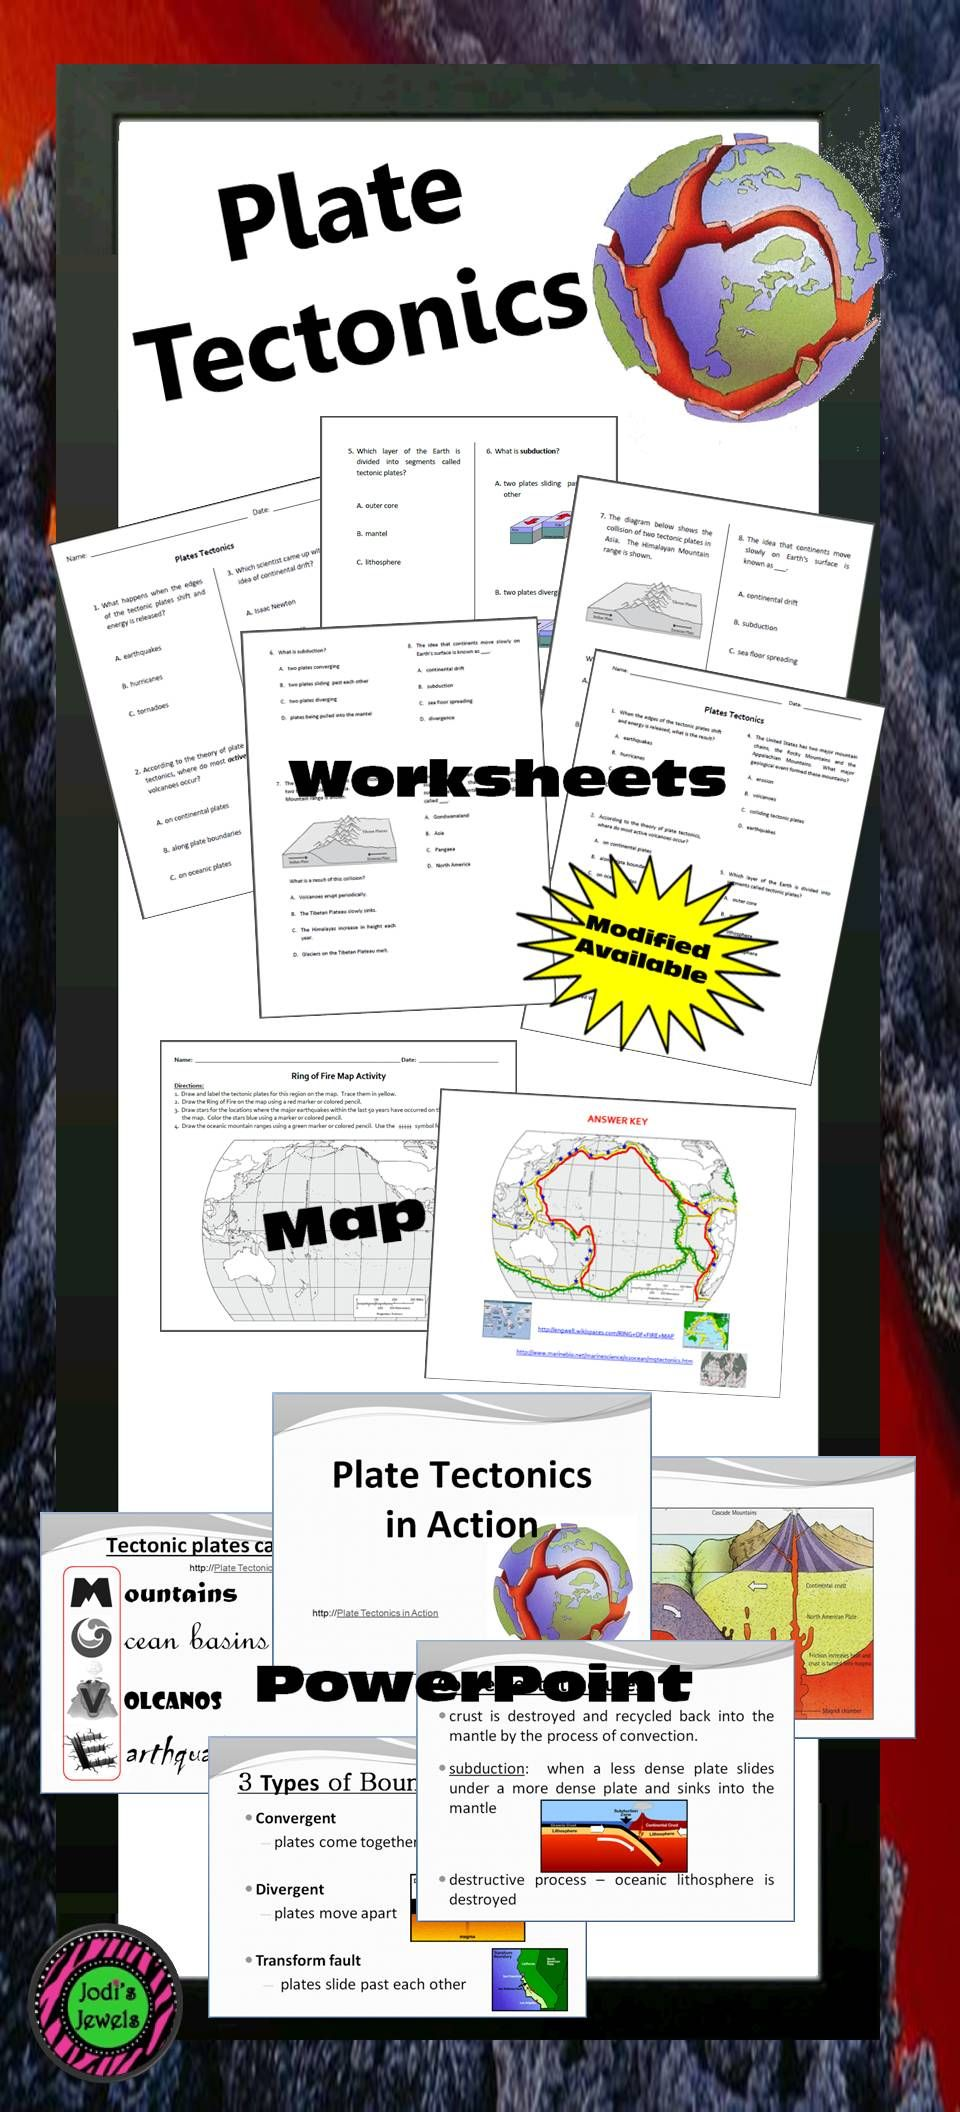 Plate tectonic lesson activities including maps, quizzes, tests ...